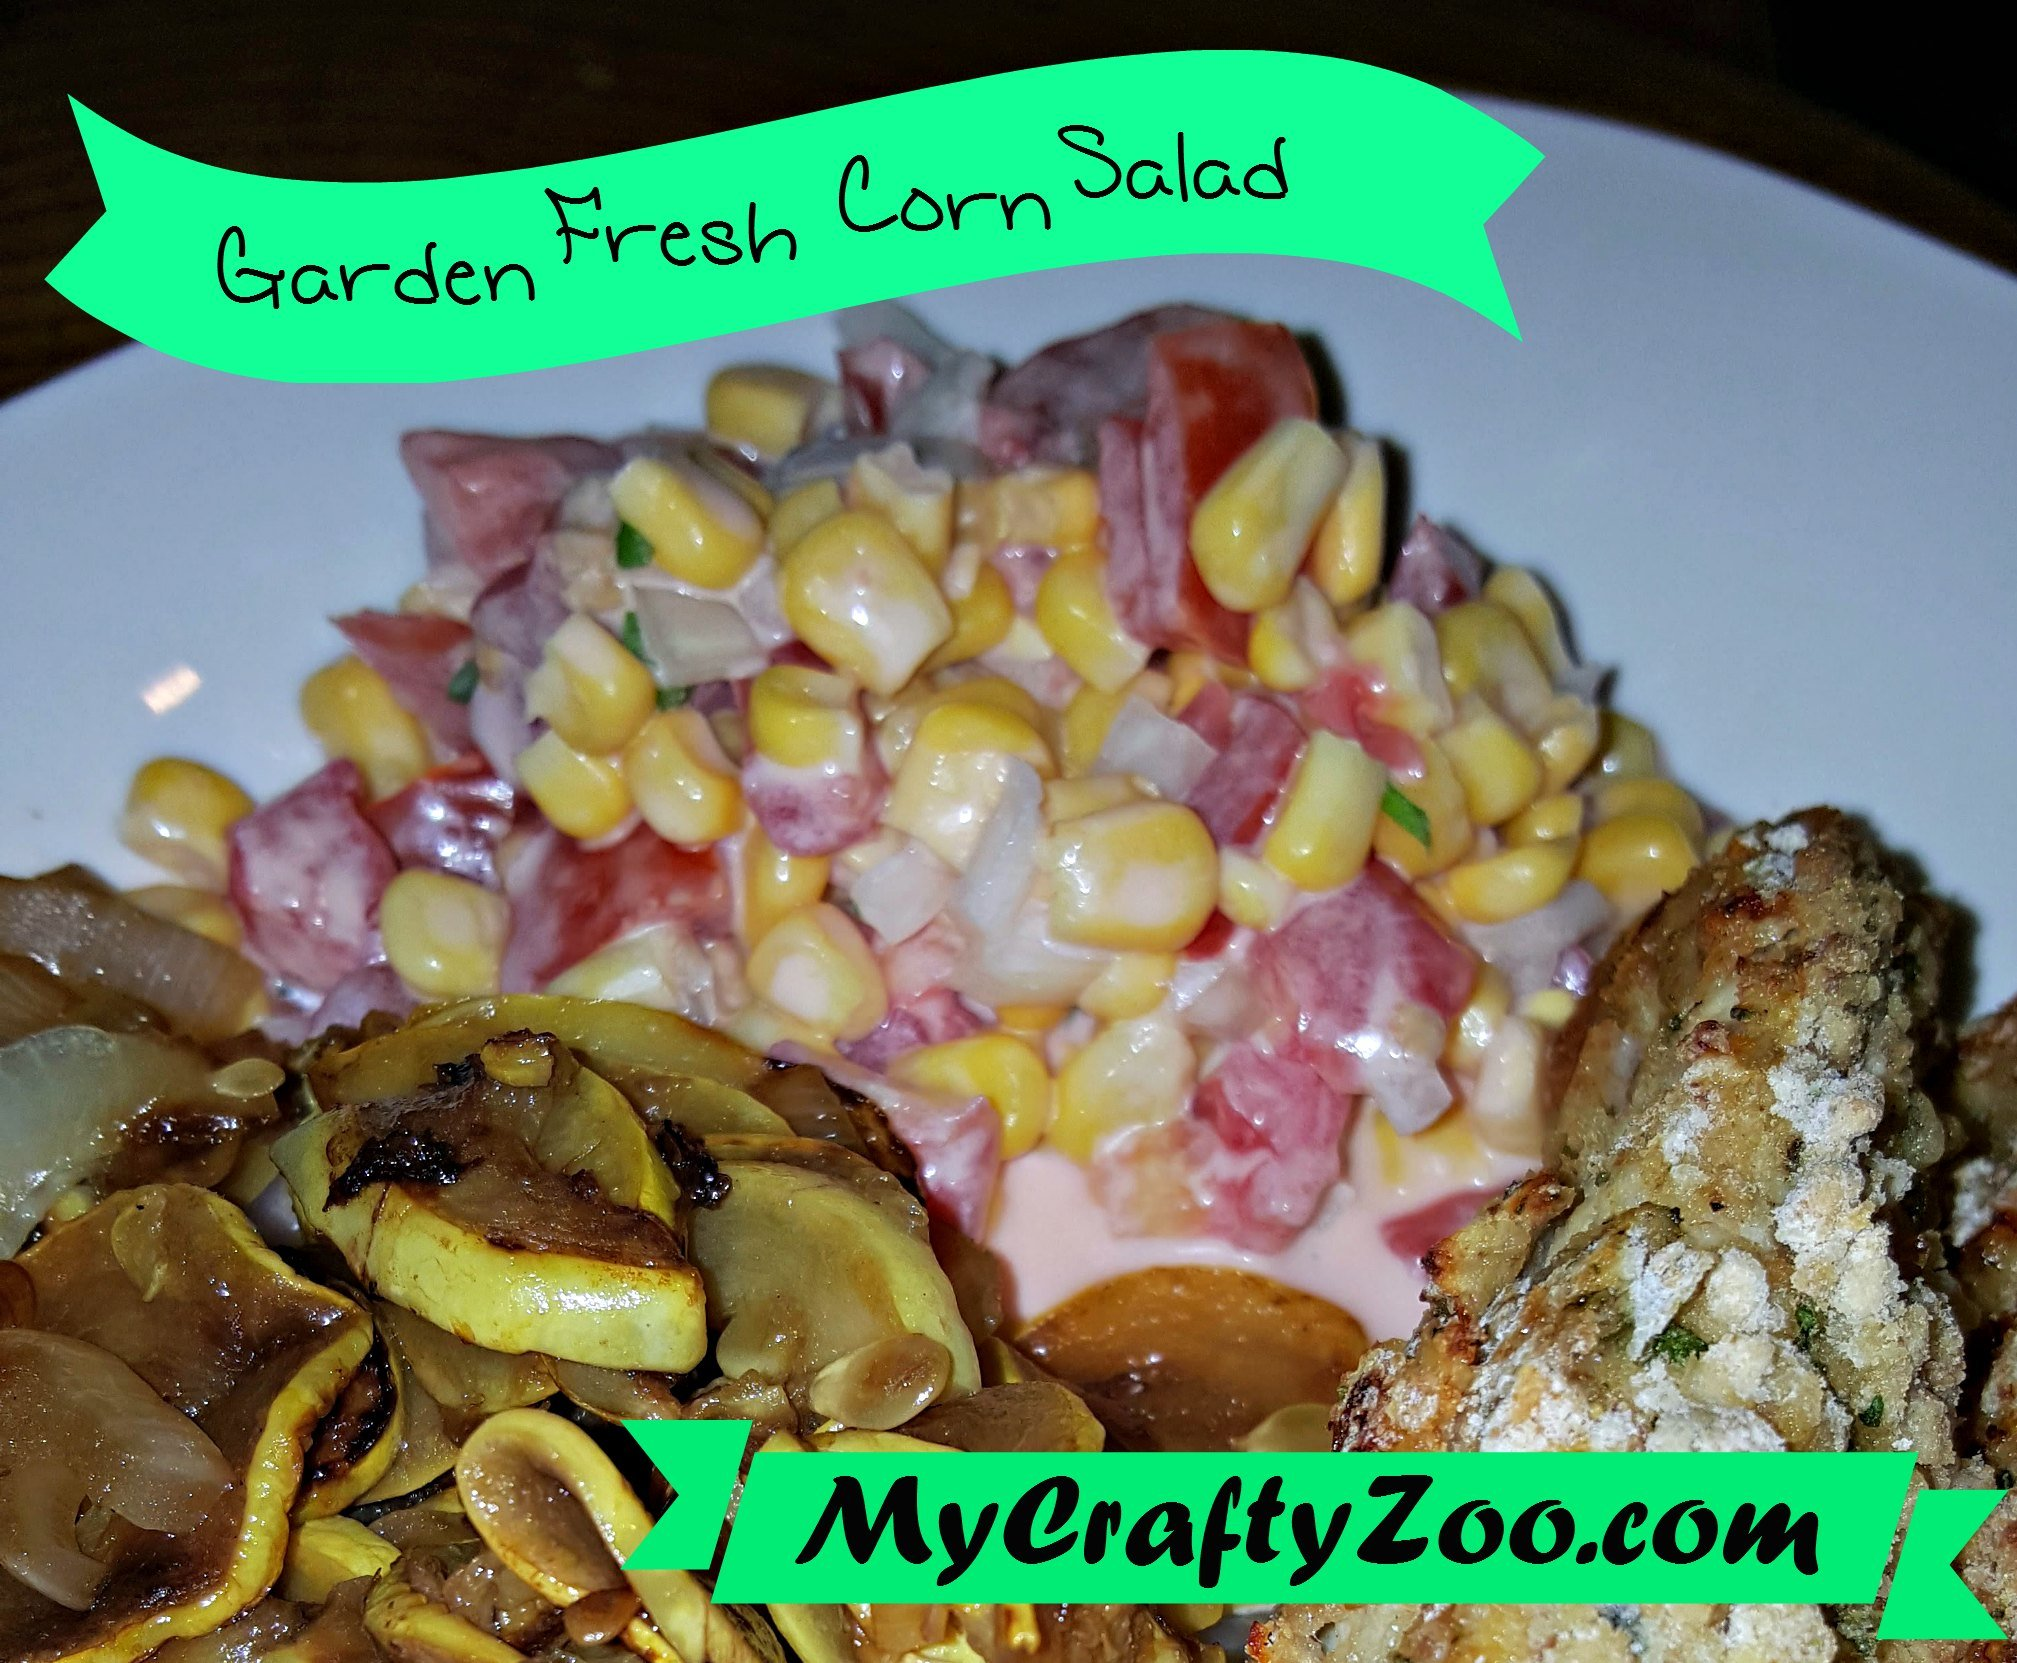 Looking for a fabulous salad with minimum calories? Check out this wonderful Garden Fresh Corn Salad!